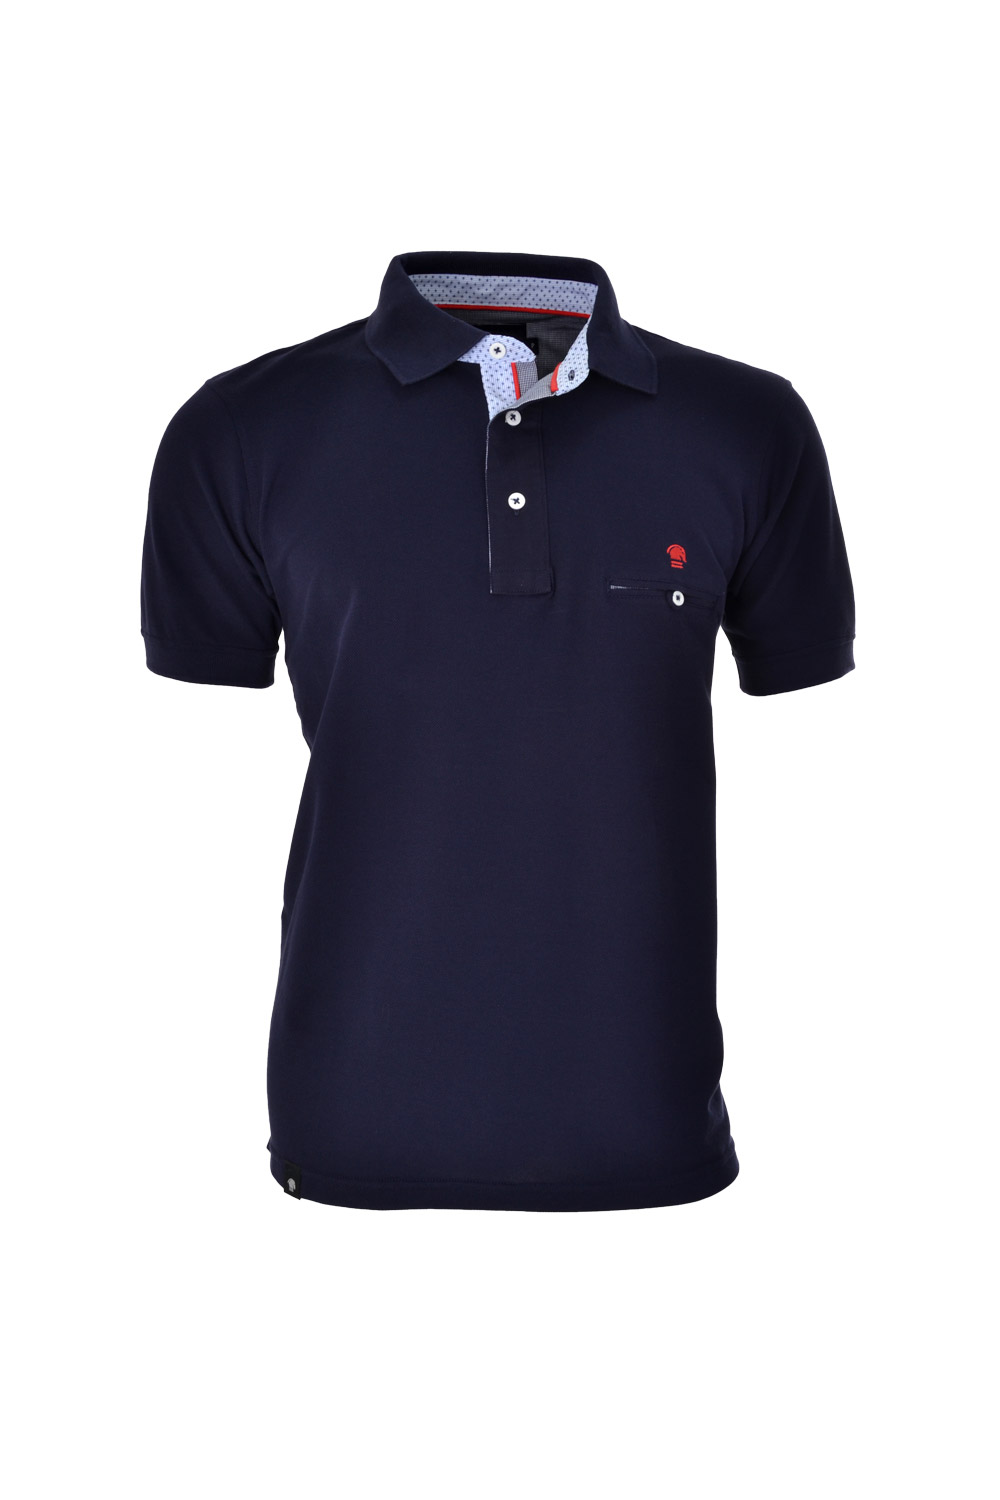 POLO MC BLUES SLIM ALGODAO & ELASTANO PIQUET LISO AZUL MARINHO